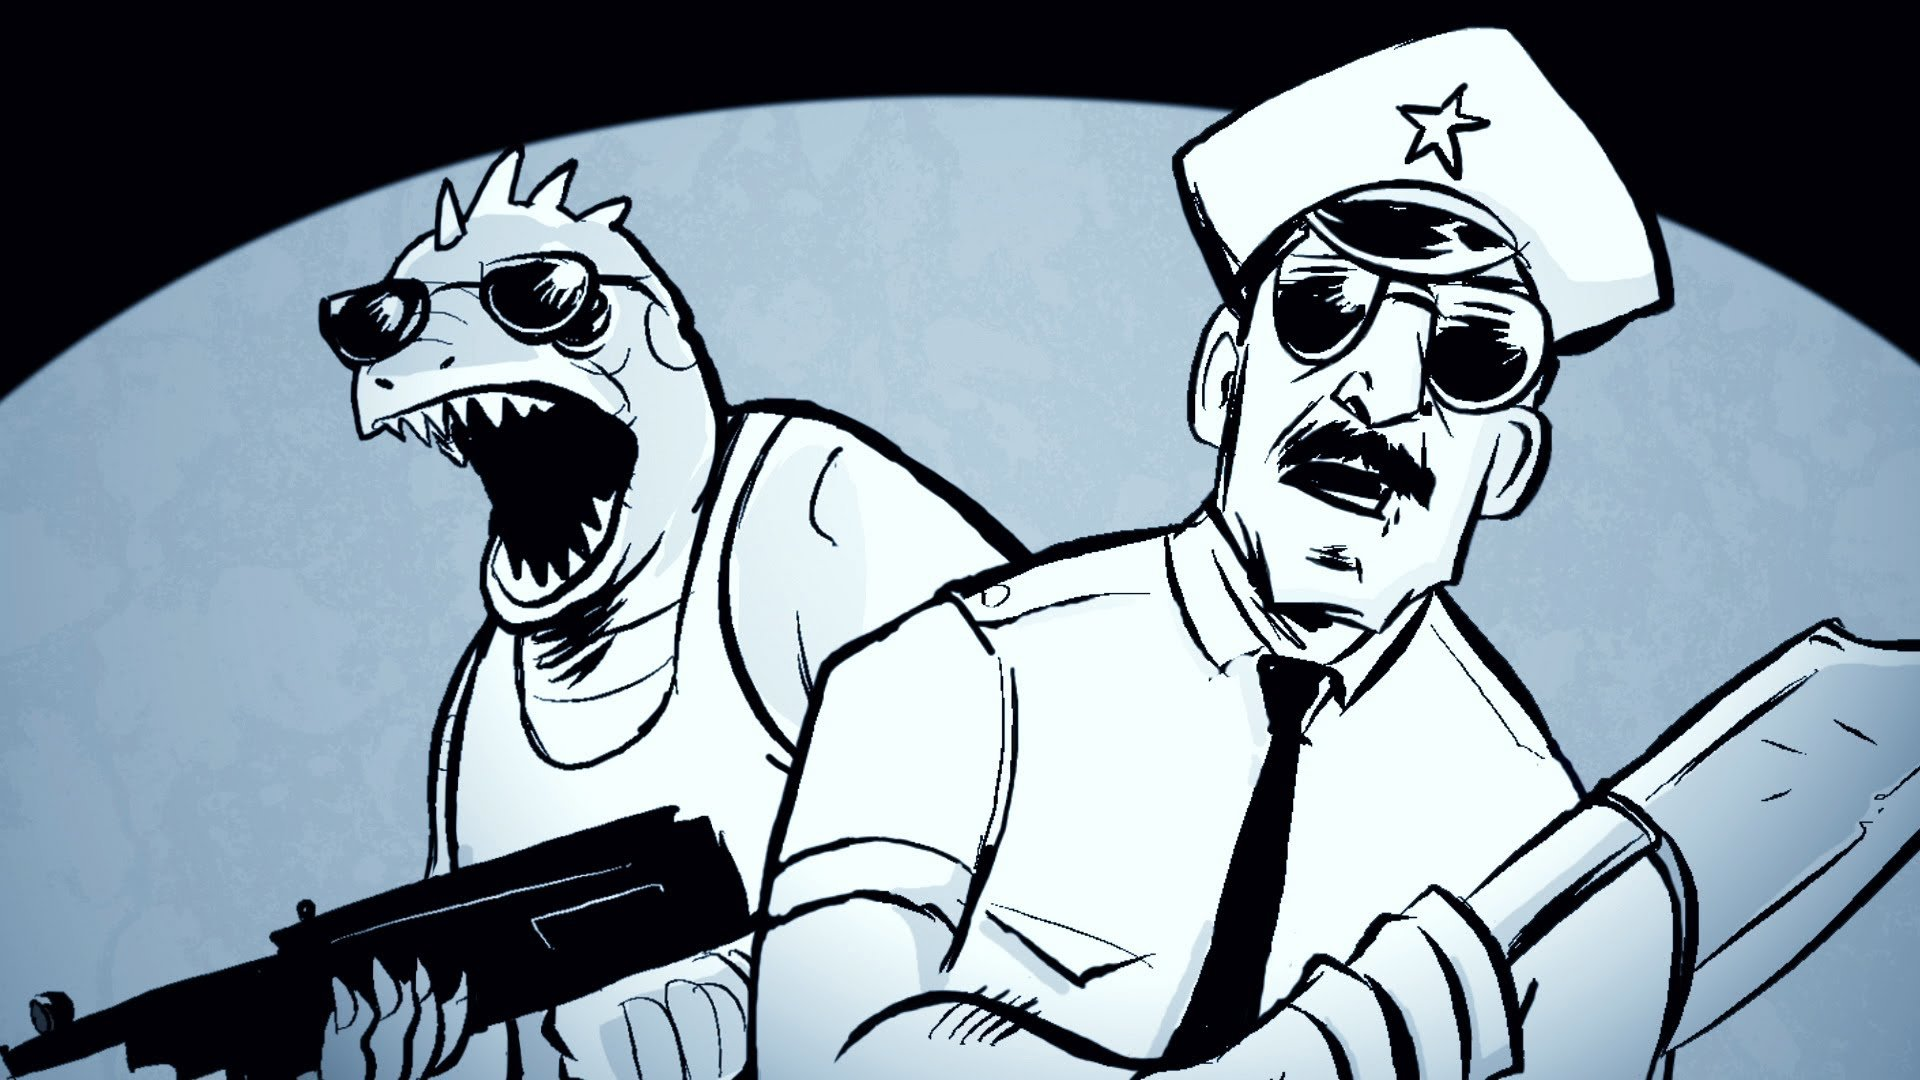 Axe Cop Wallpaper Axe-cop Animation Action